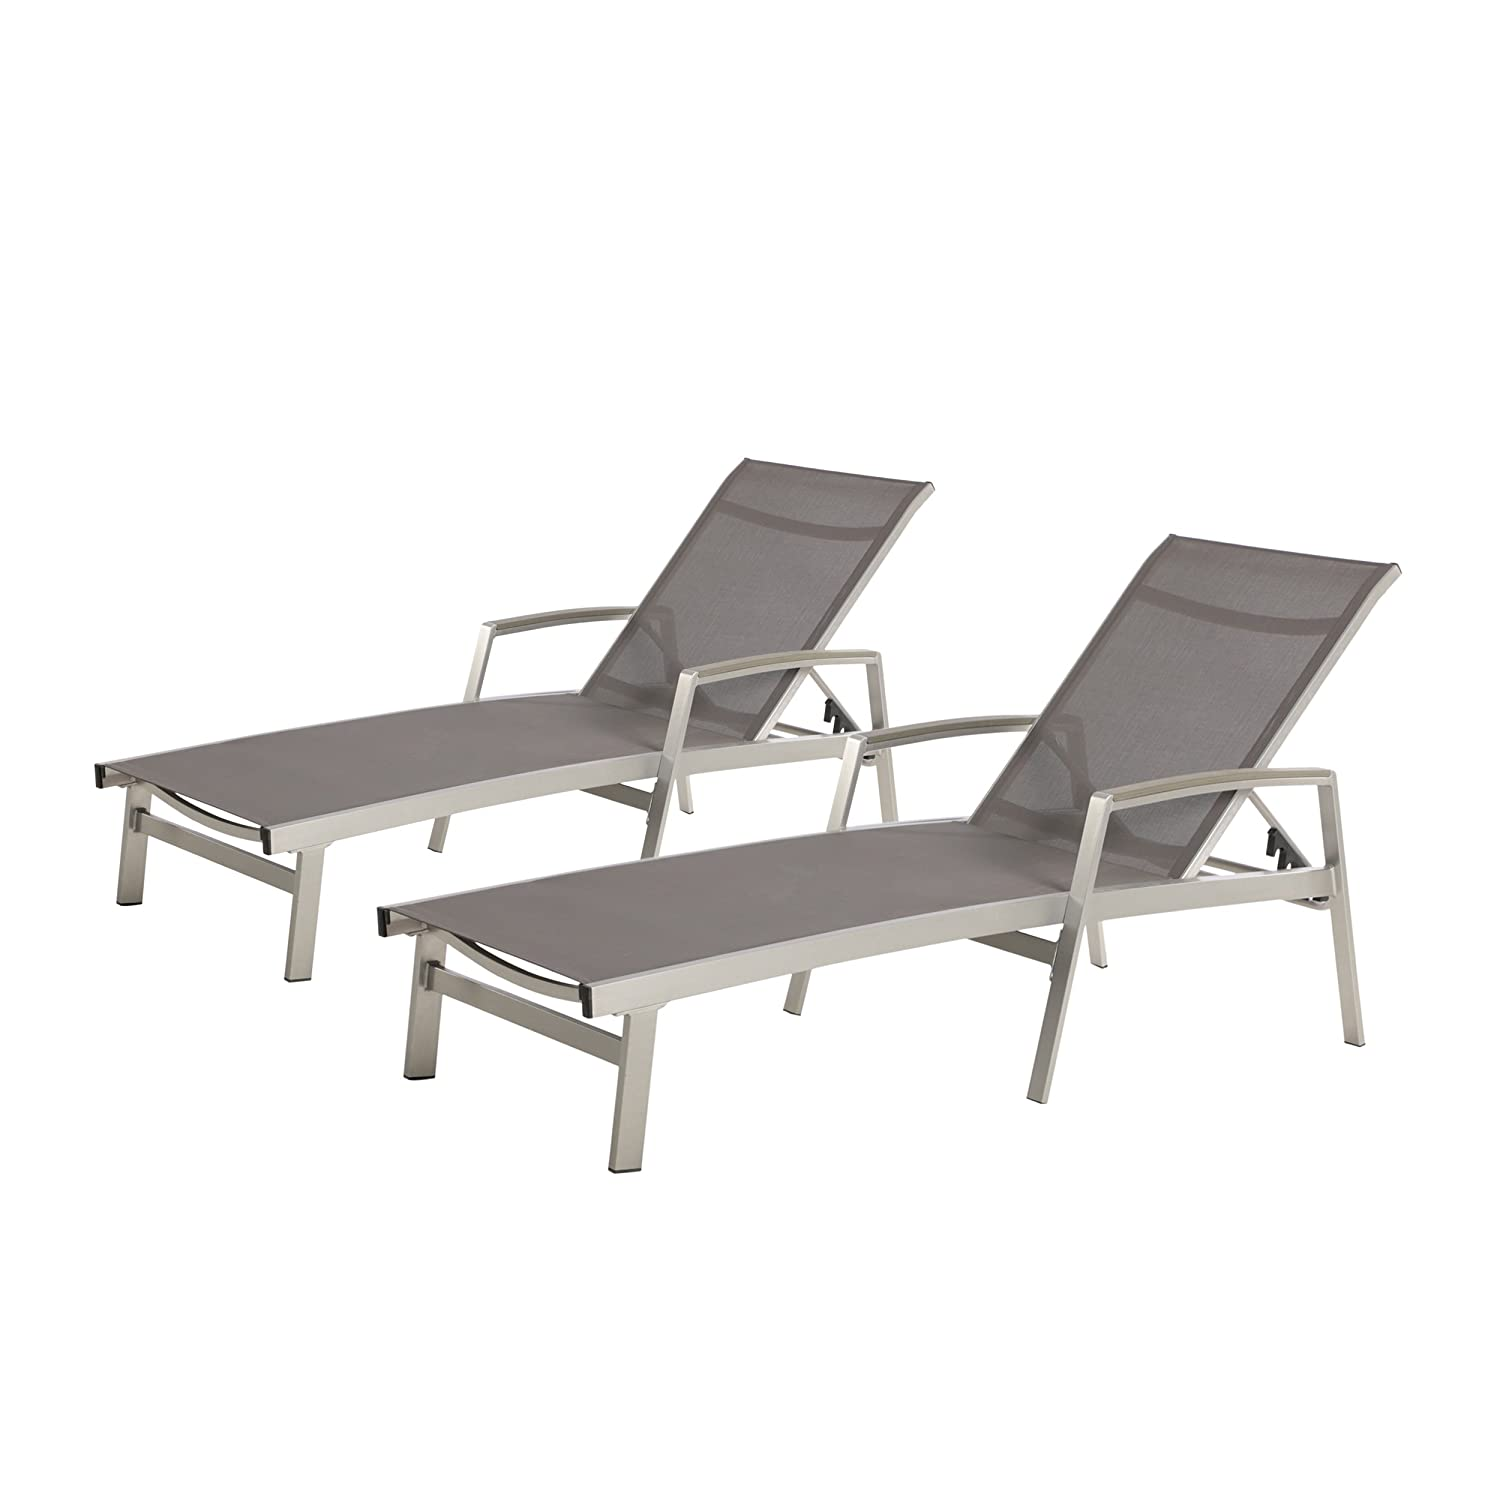 Amazon com great deal furniture joy outdoor mesh and aluminum chaise lounge set of 2 gray garden outdoor